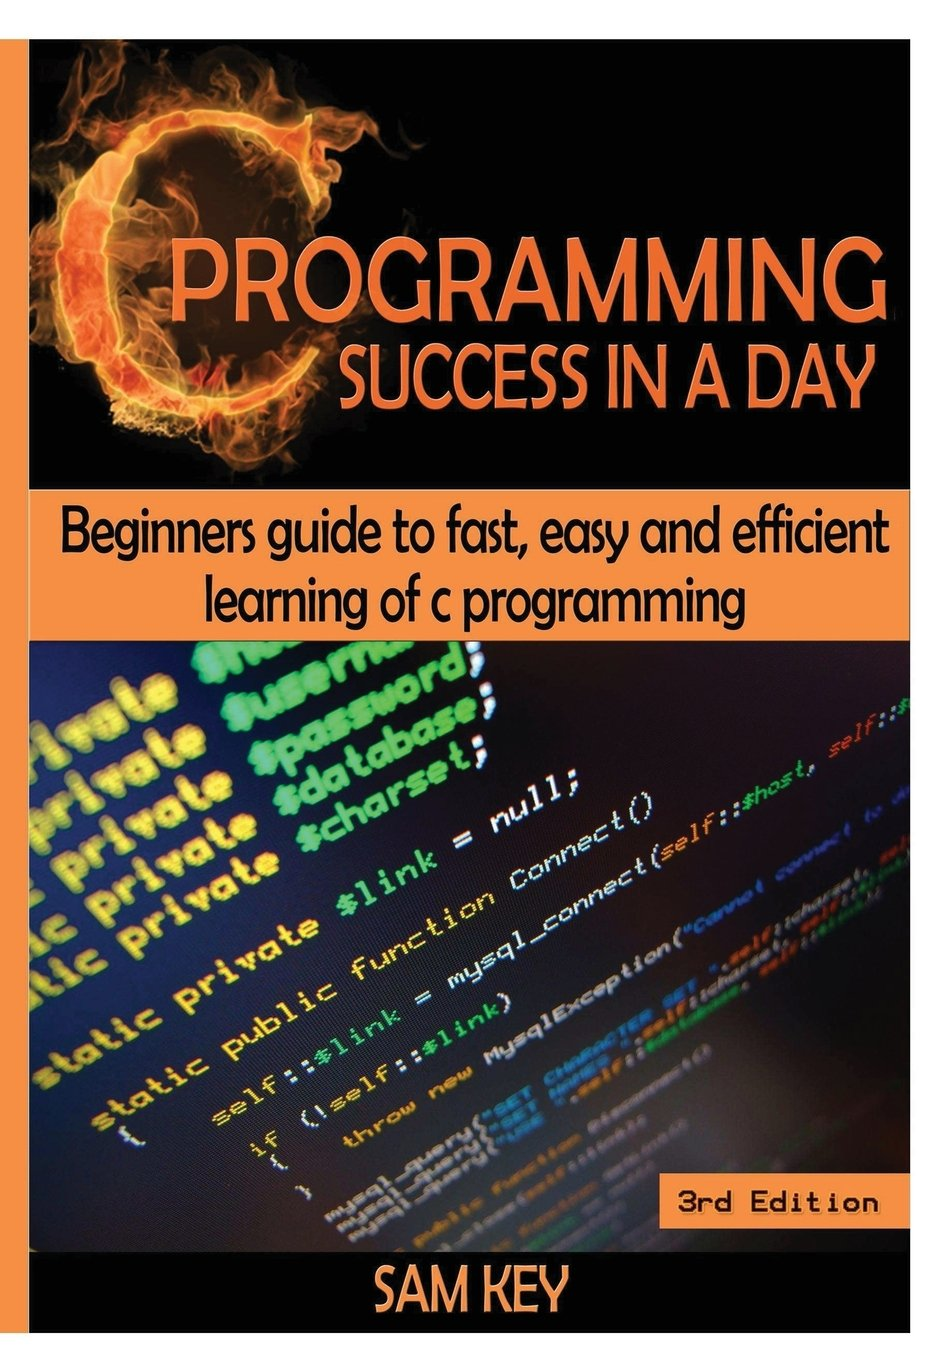 C Programming Success in a Day!: Sam Key: Amazon ae: Panworld Global